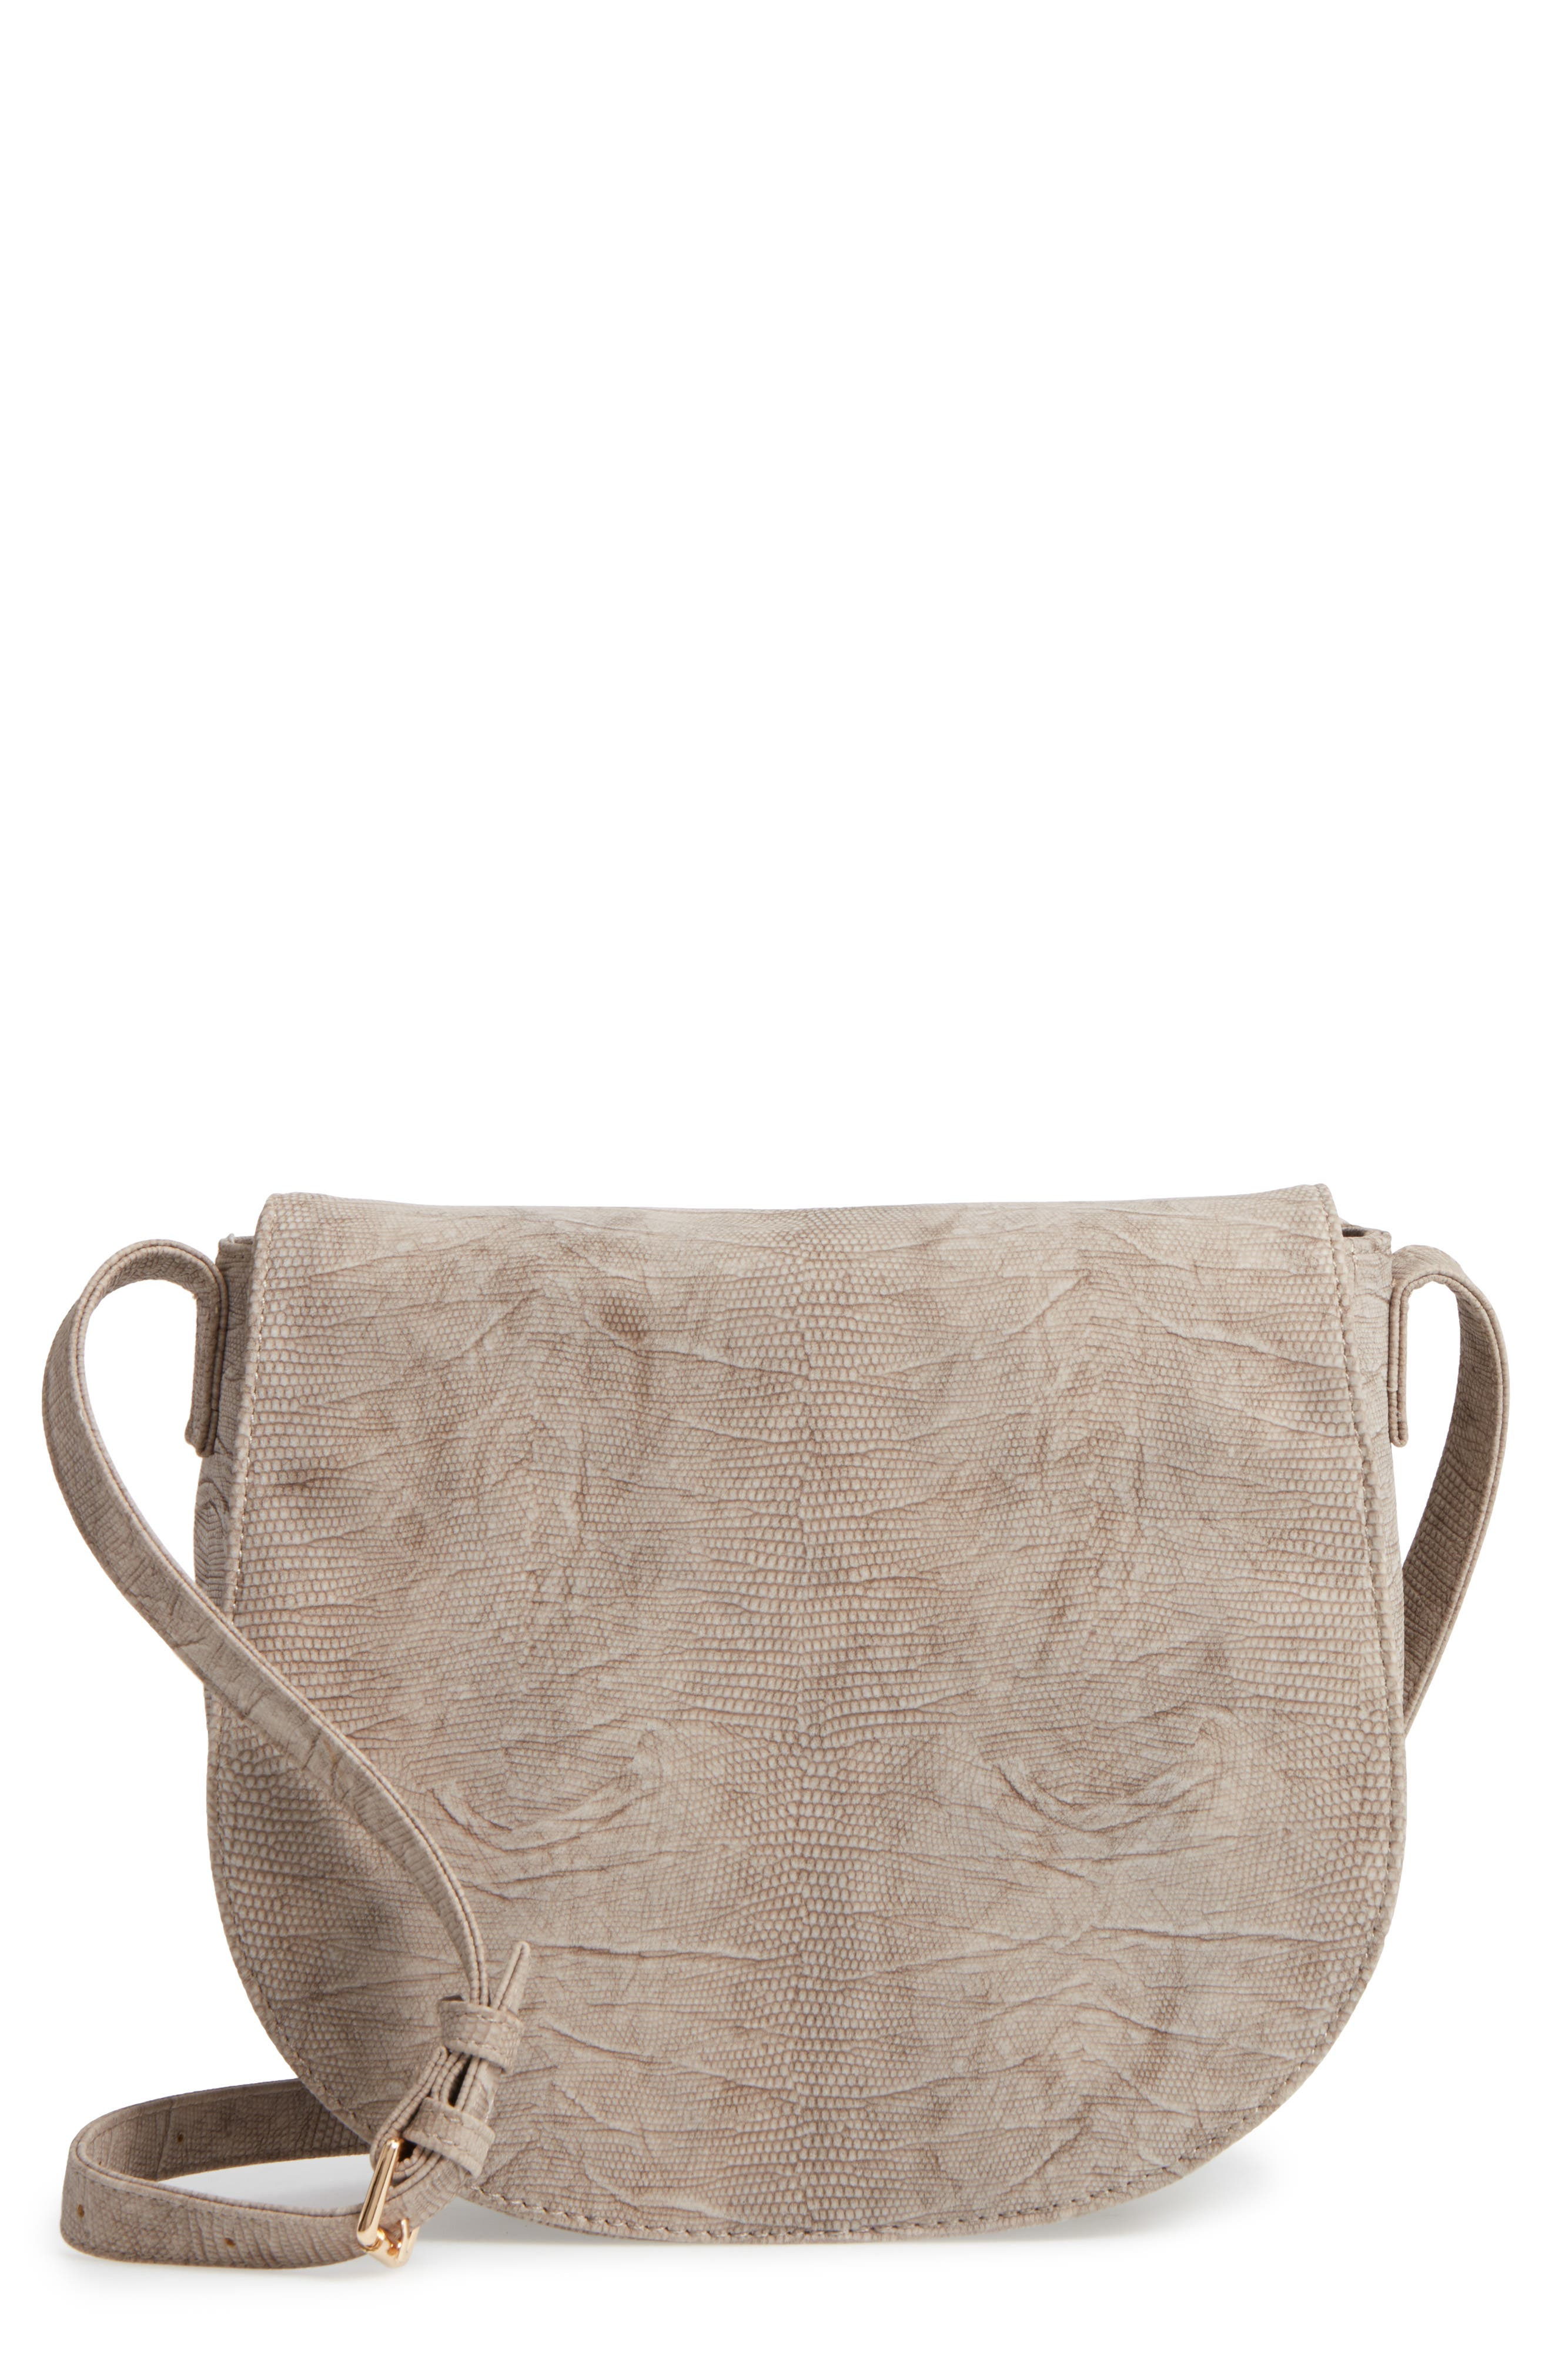 Livvy Faux Leather Crossbody Saddle Bag,                         Main,                         color, 250